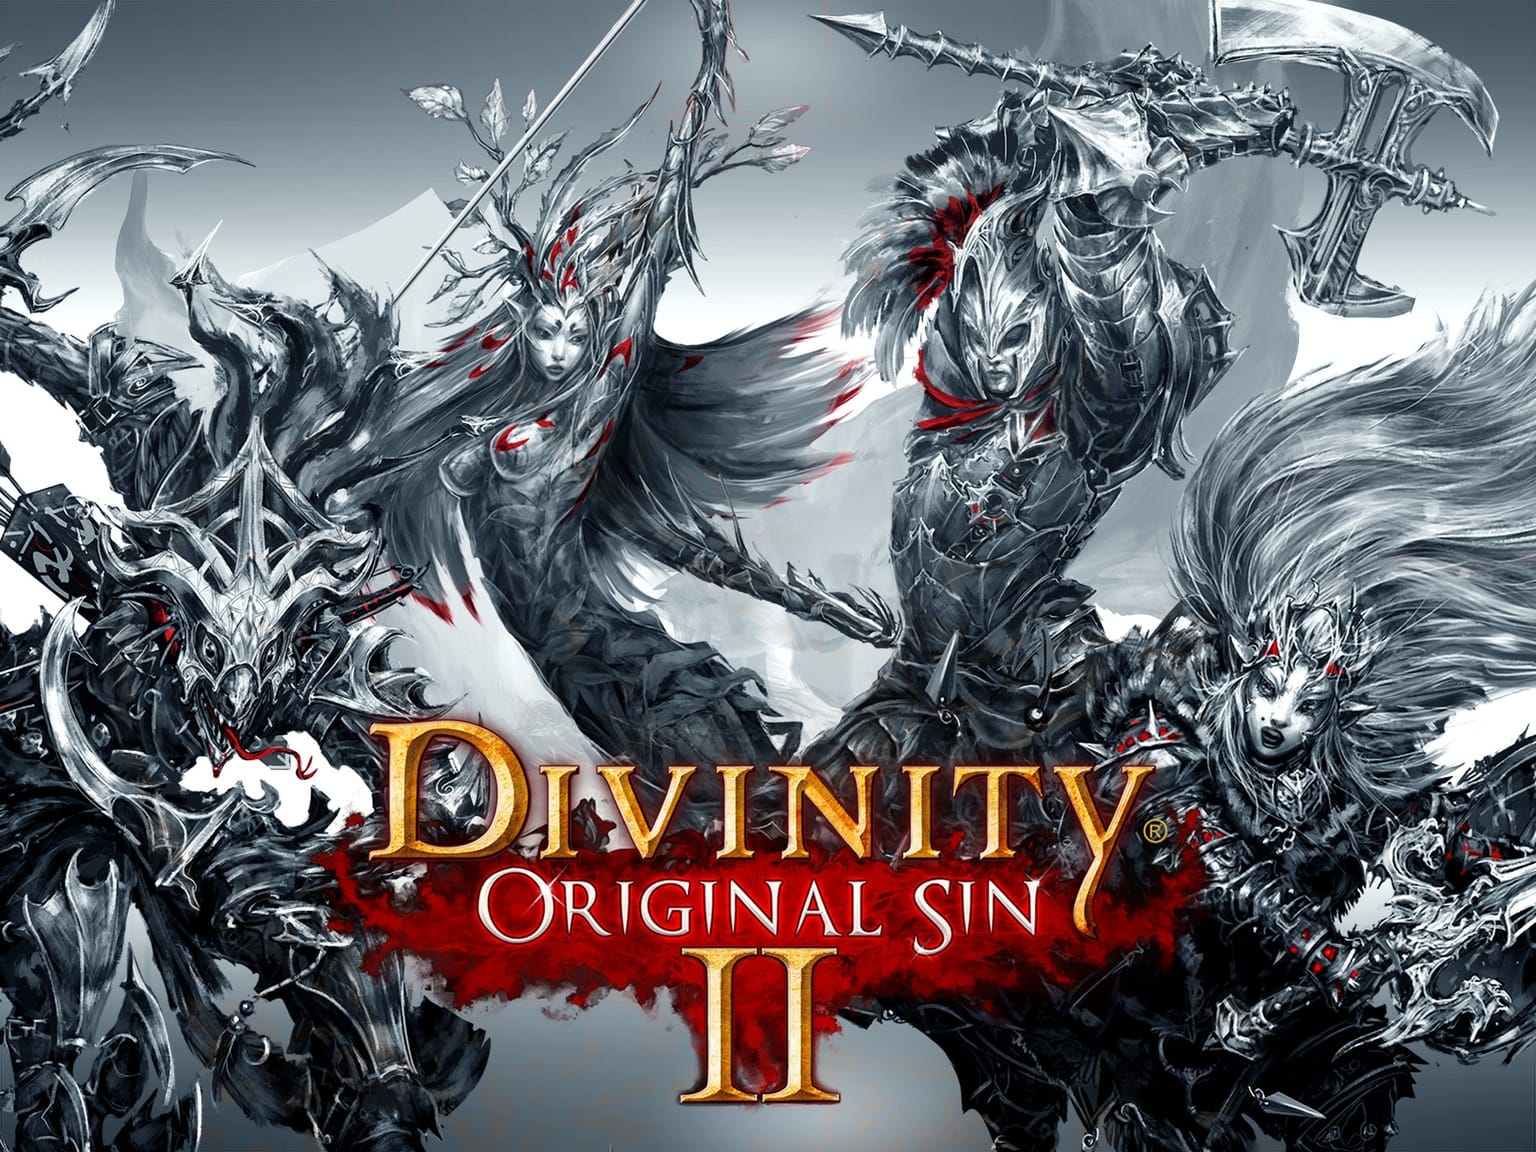 Divinity Original Sin 2 black friday deals